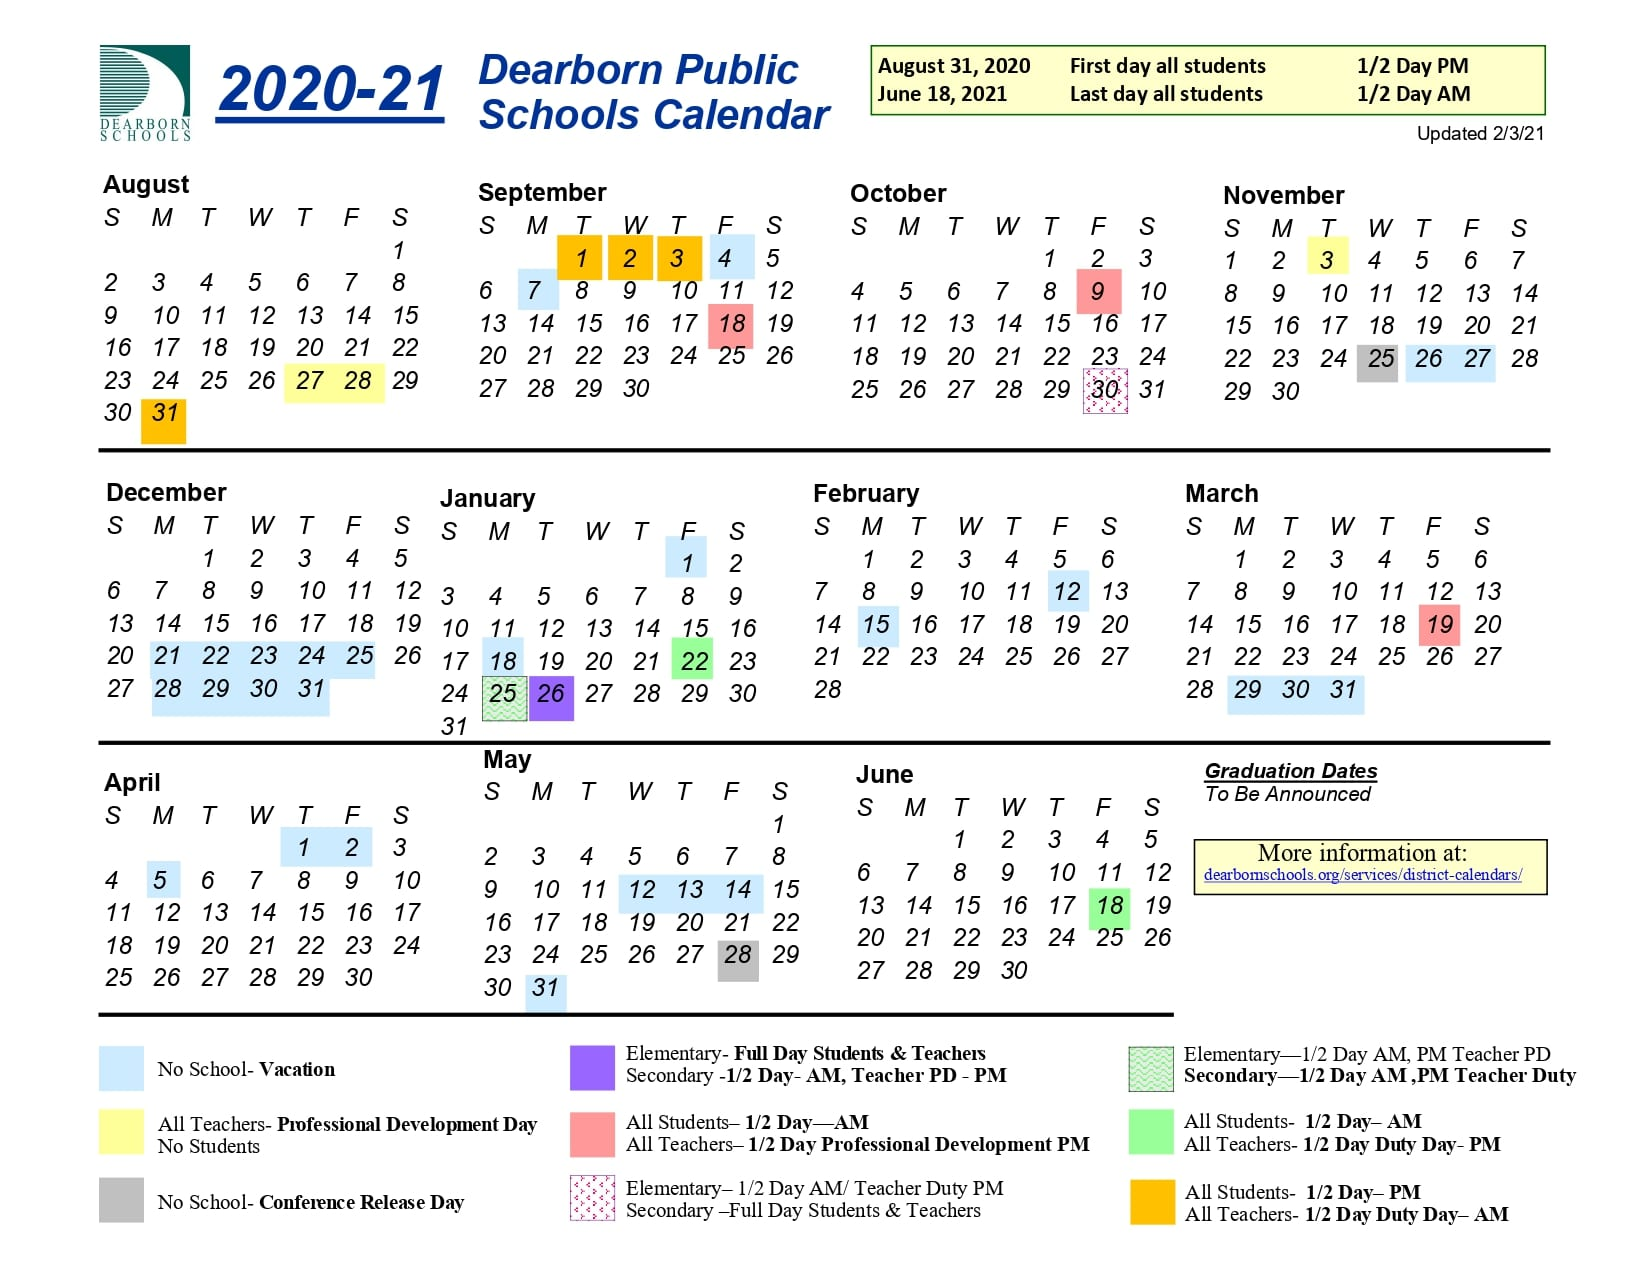 Graphic of the 2020-21 school calendar